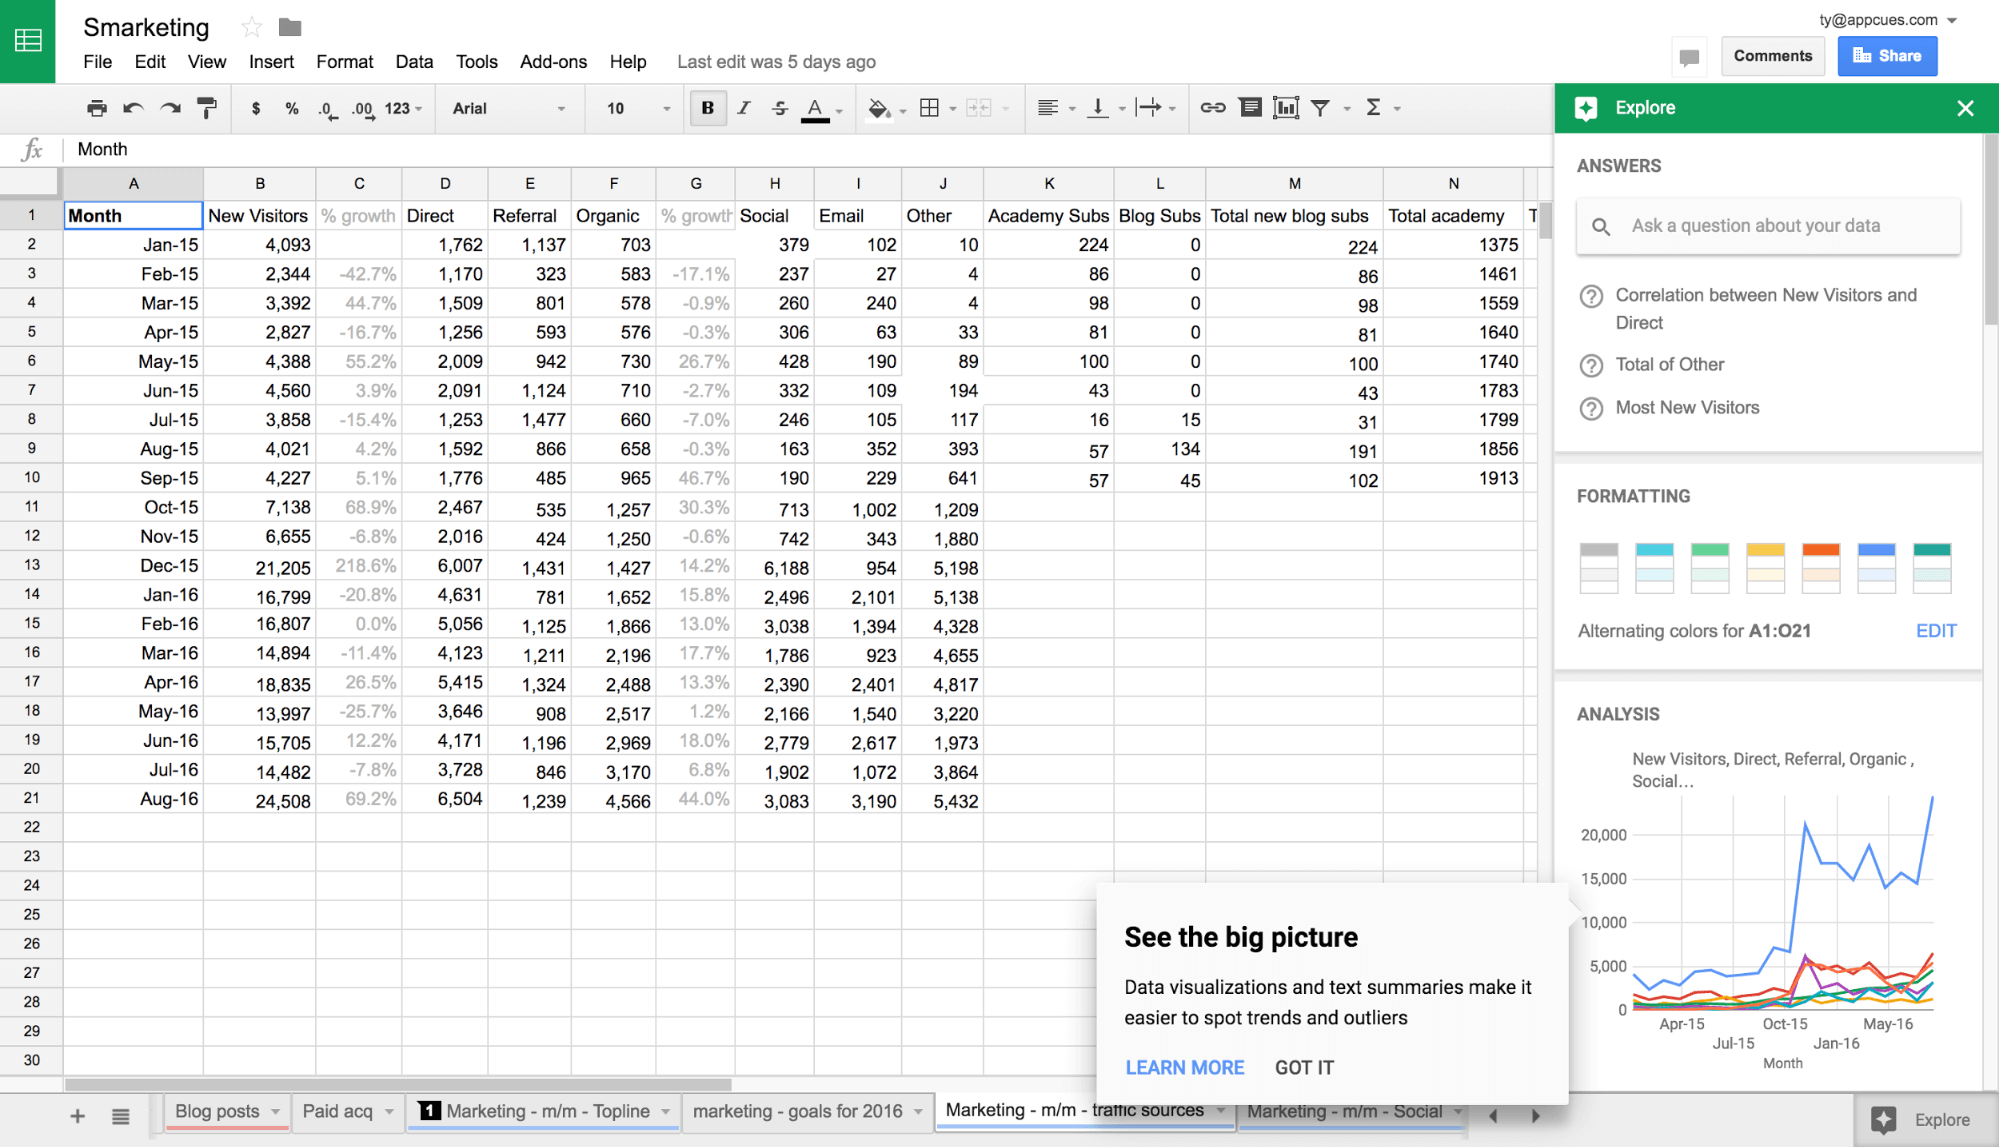 Smarketing spreadsheet the big picture